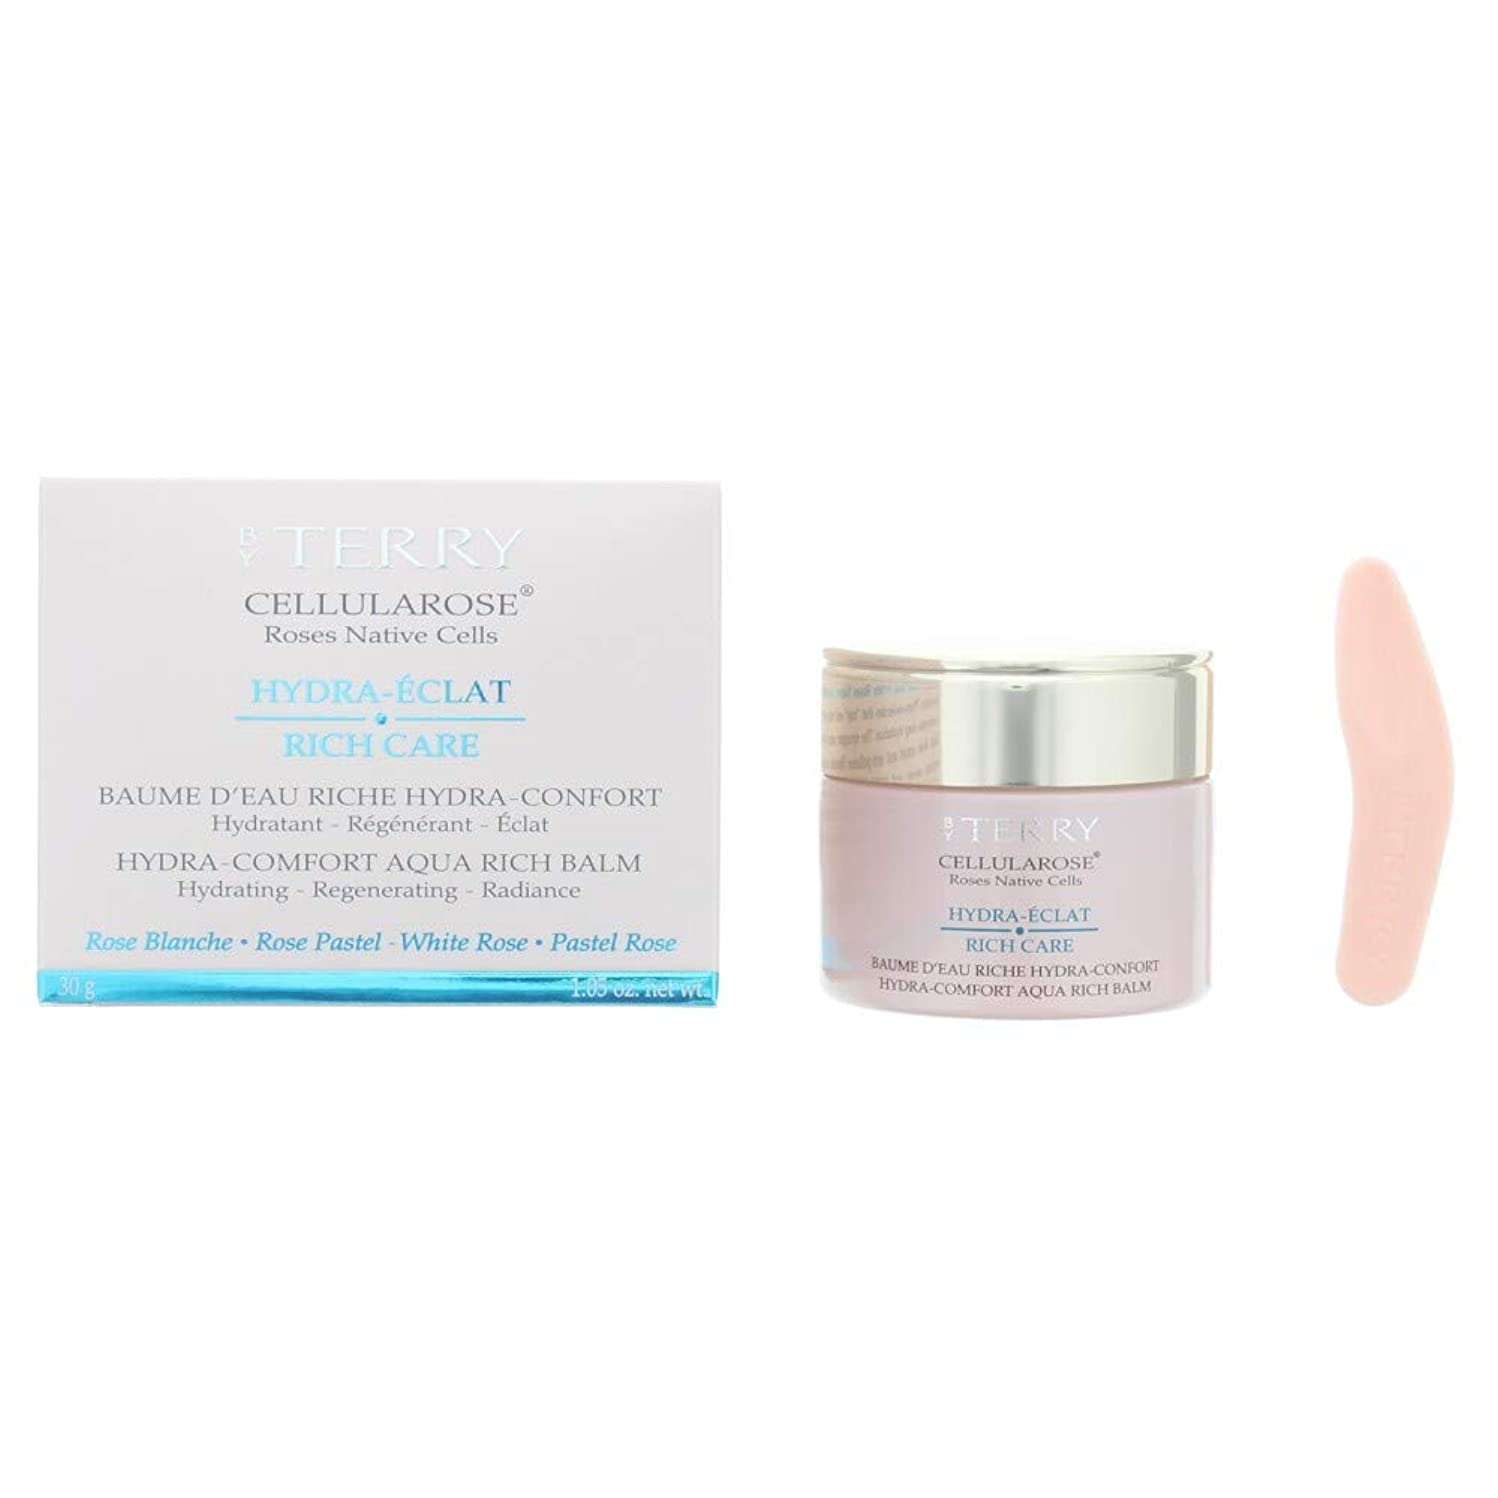 シャワー天皇土バイテリー Cellularose Hydra-Eclat Rich Care Hydra-Comfort Aqua Rich Balm 30g/1.05oz並行輸入品